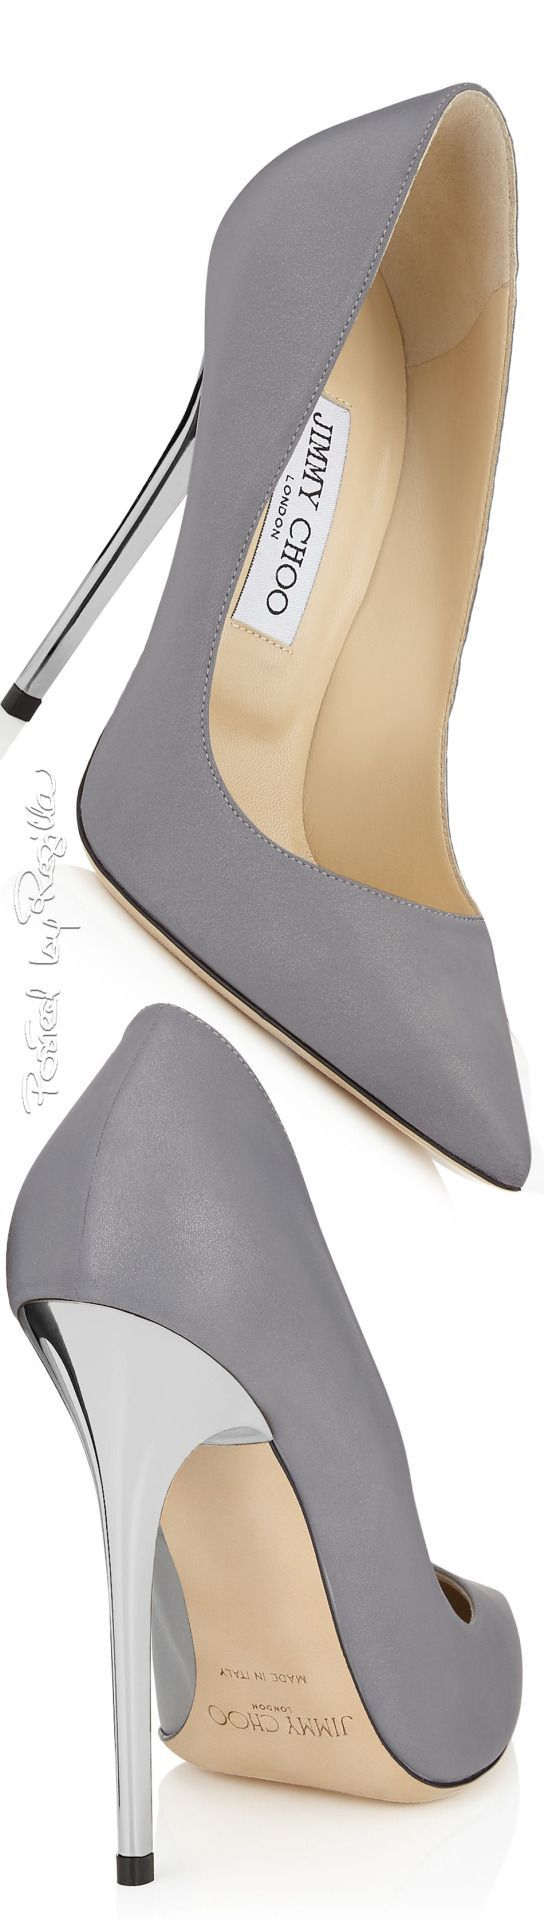 Jimmy Choo ~ grey heels 2016